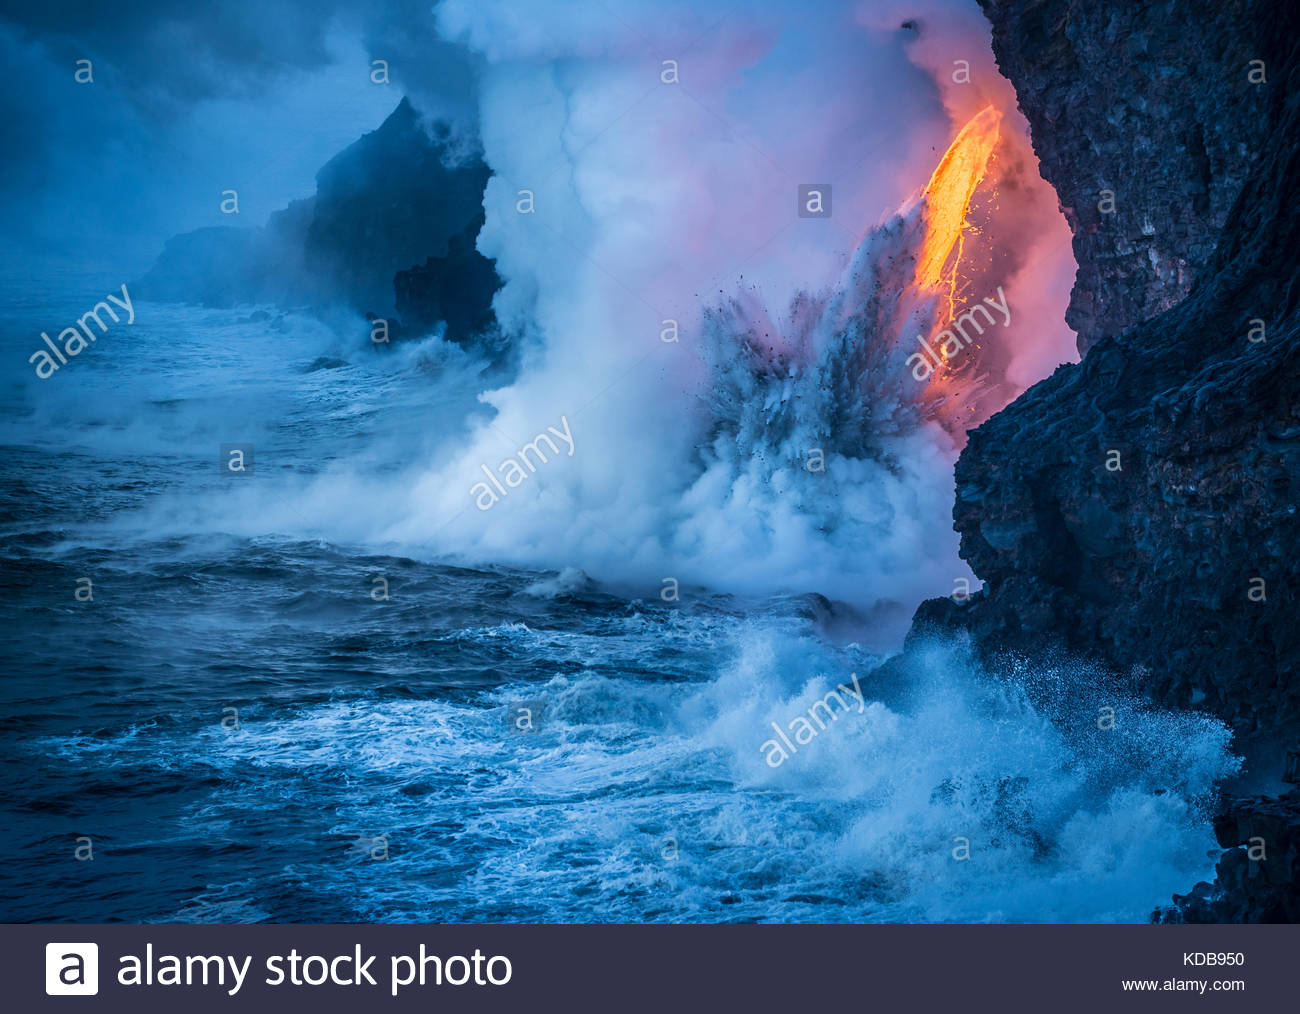 Lava falling from sixty feet creates an explosion from the heat and pressure of super heated water. Stock Photo